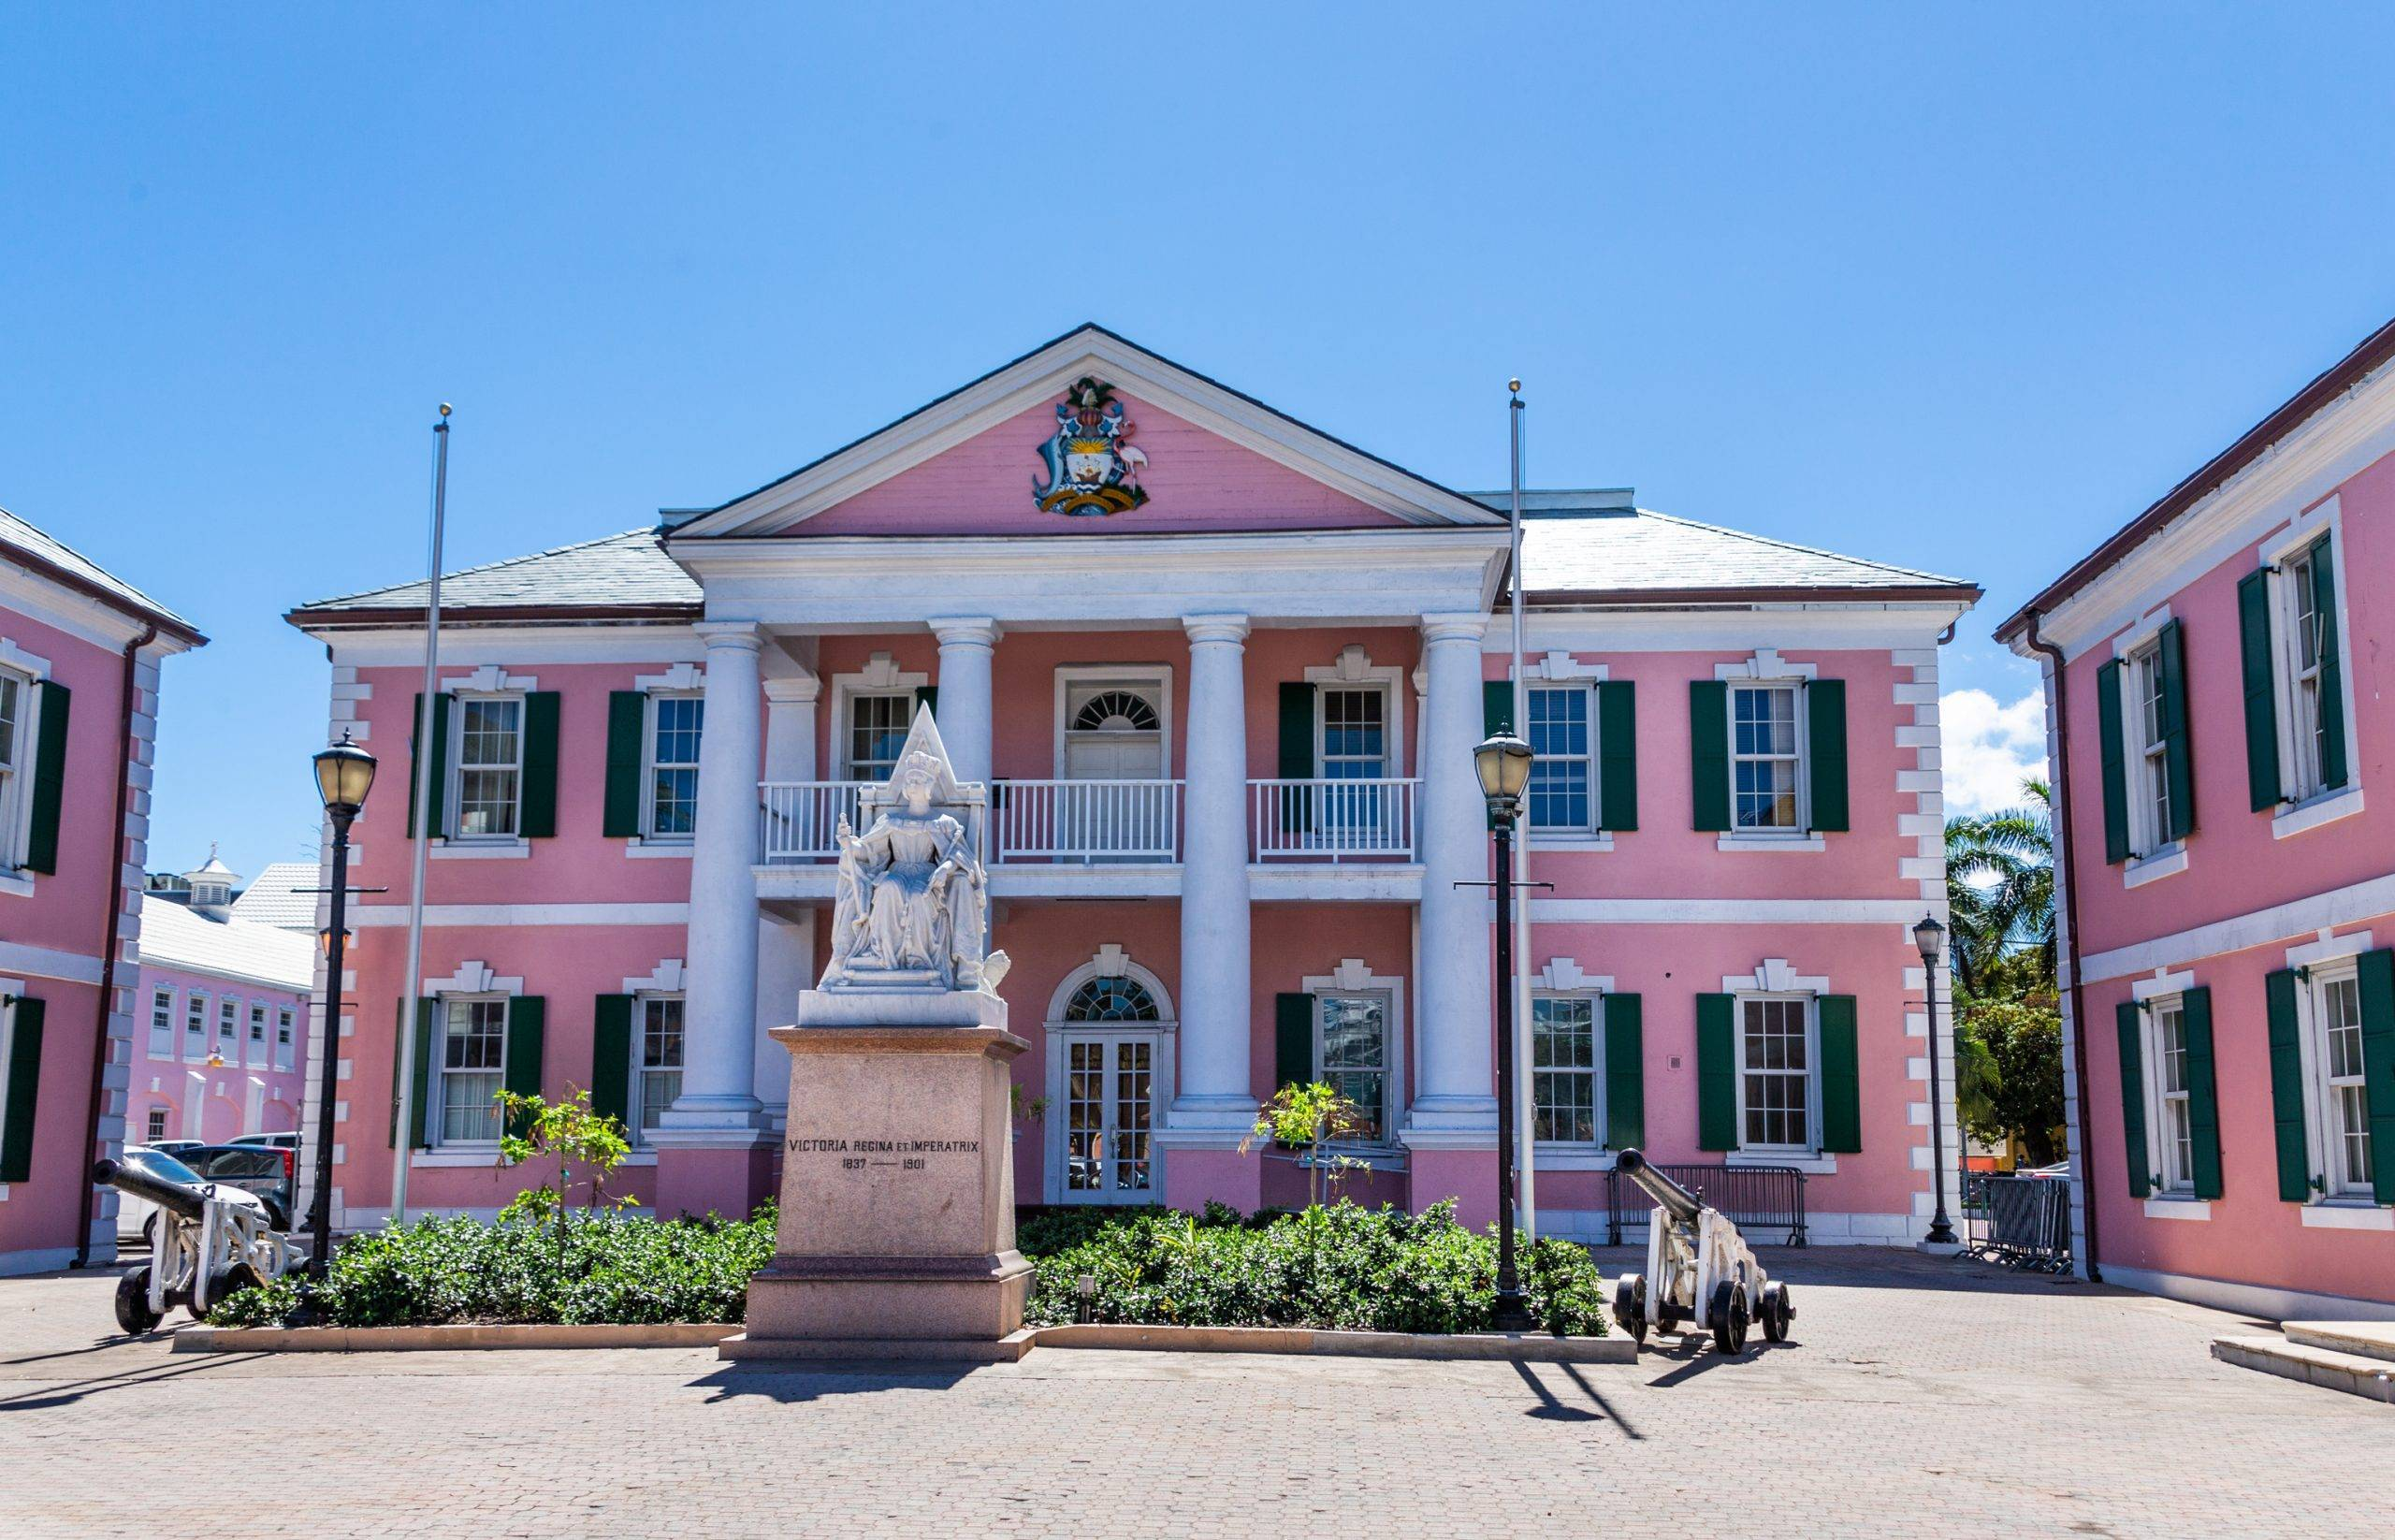 Statue in Front of Nassau Government Building